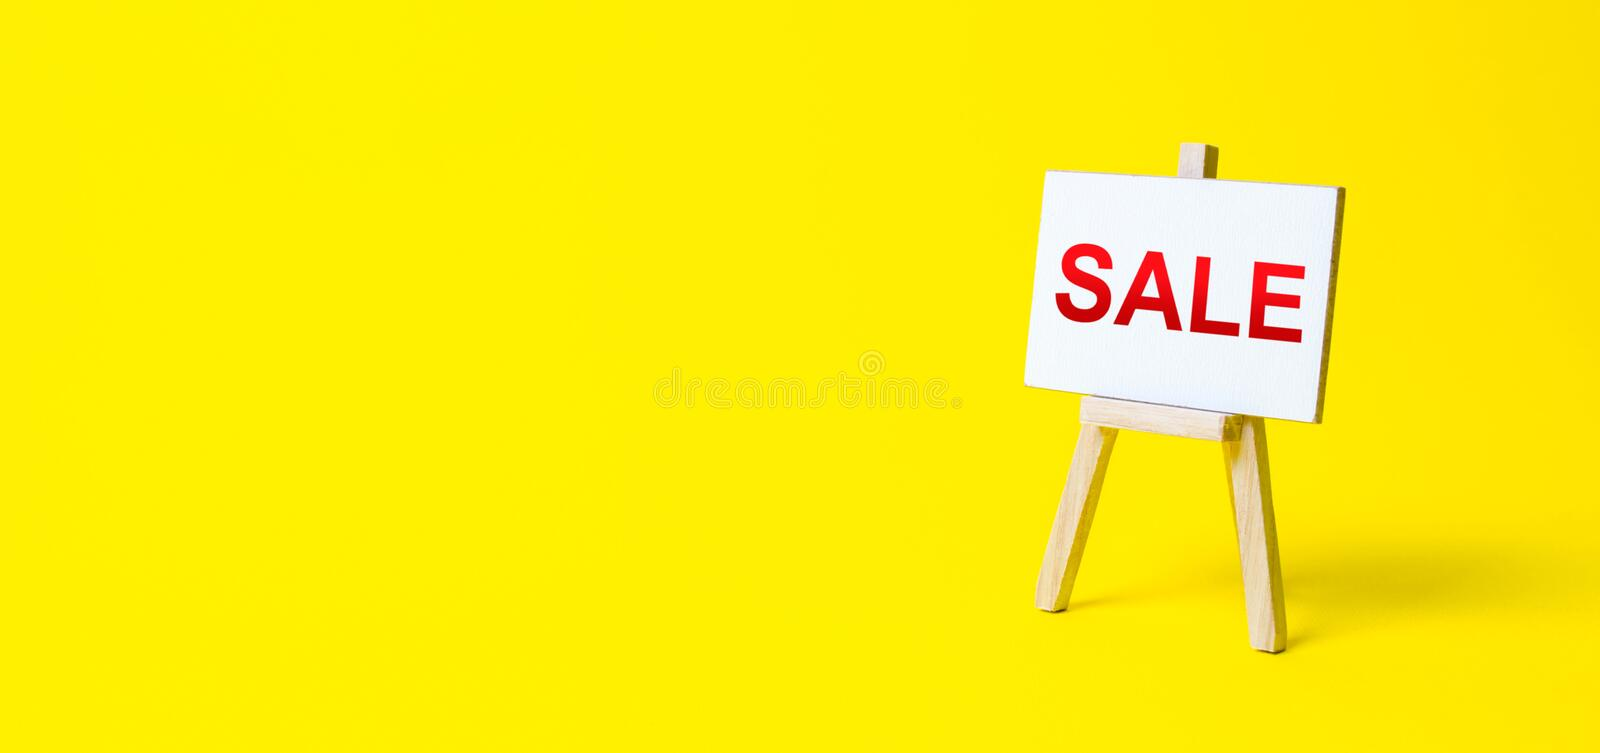 Easel sign with the words Sale. Advertising marketing. Discount. Shopping online. Increase sales and attract new customers. Sale of goods and products by stock photography